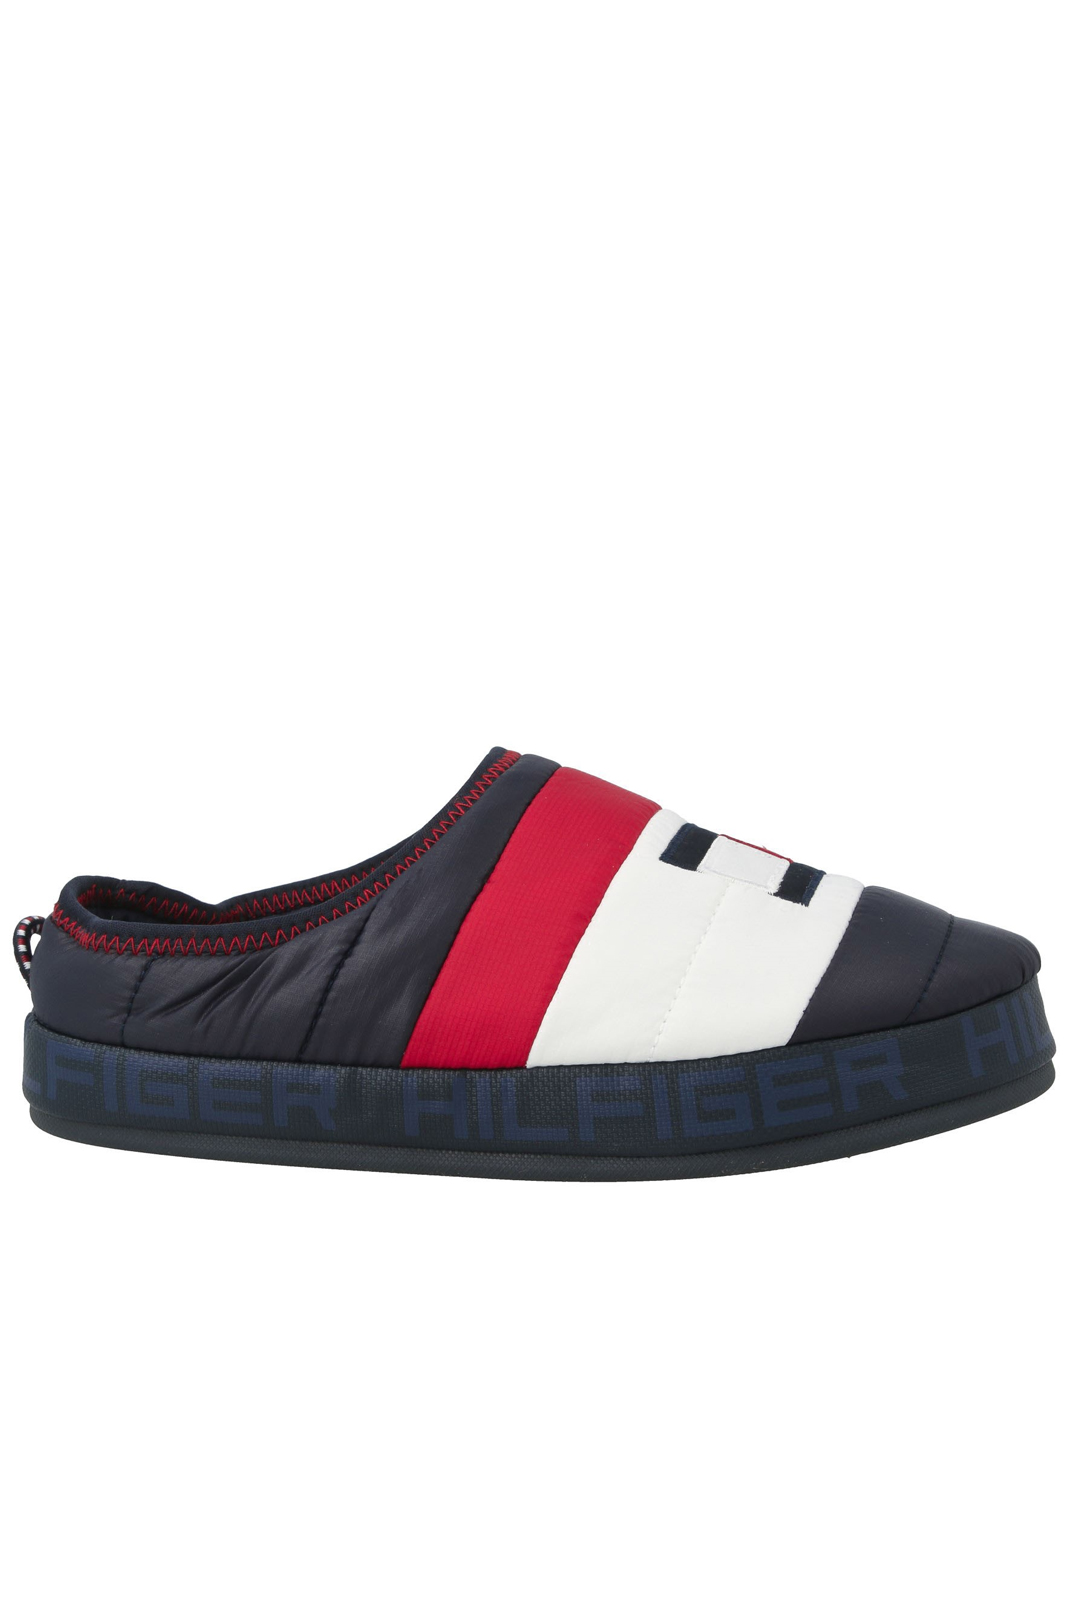 Tongs / Mules  Tommy Jeans FM0FM02358 403 MIDNIGHT